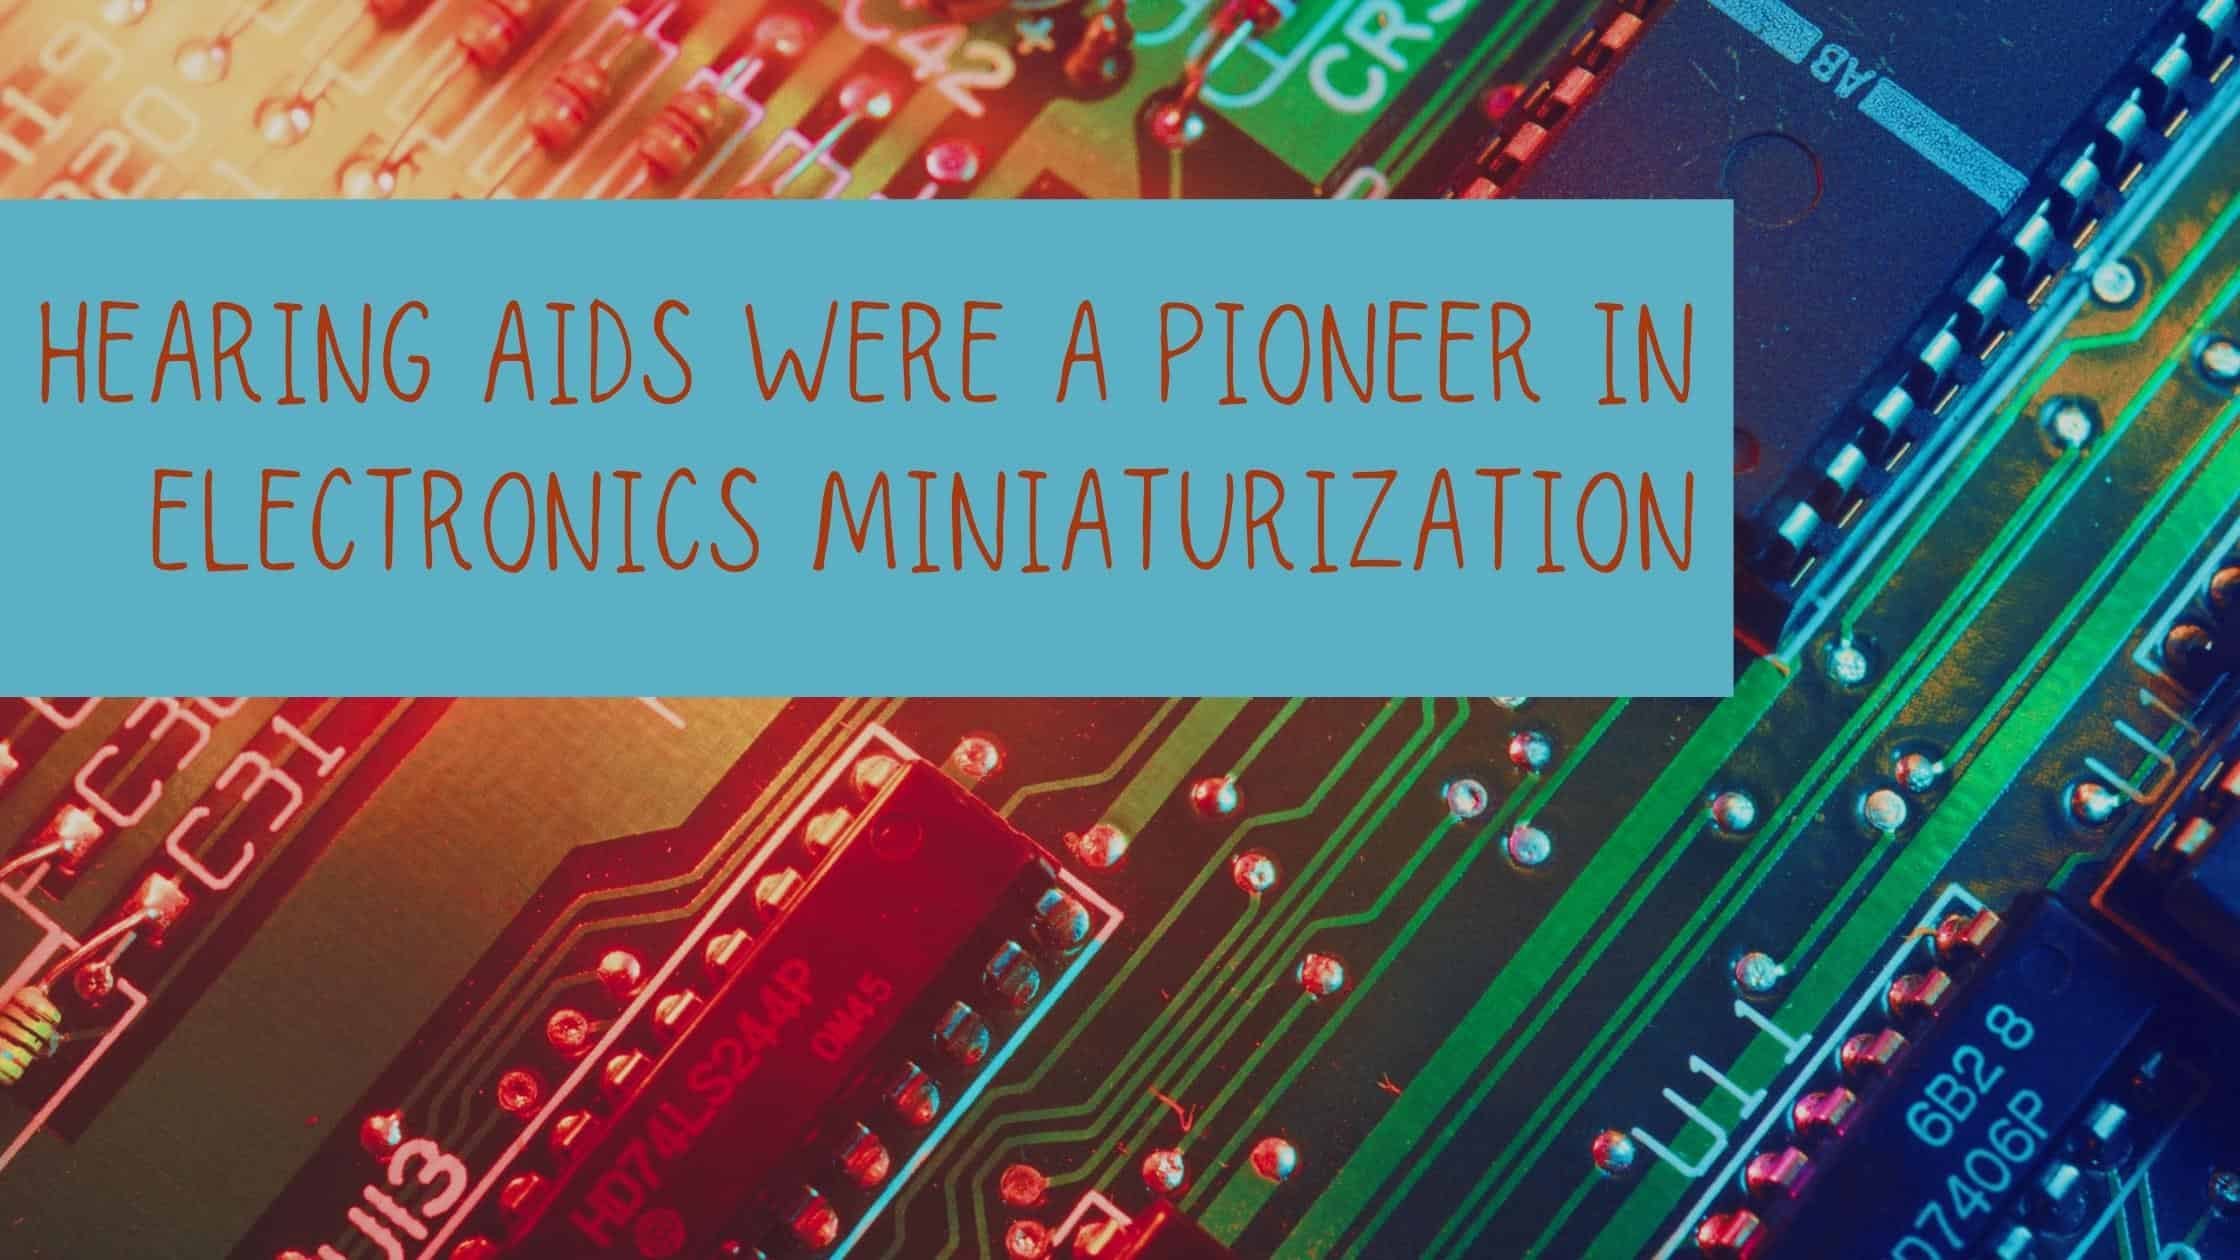 Hearing Aids were a Pioneer in Electronics Miniaturization